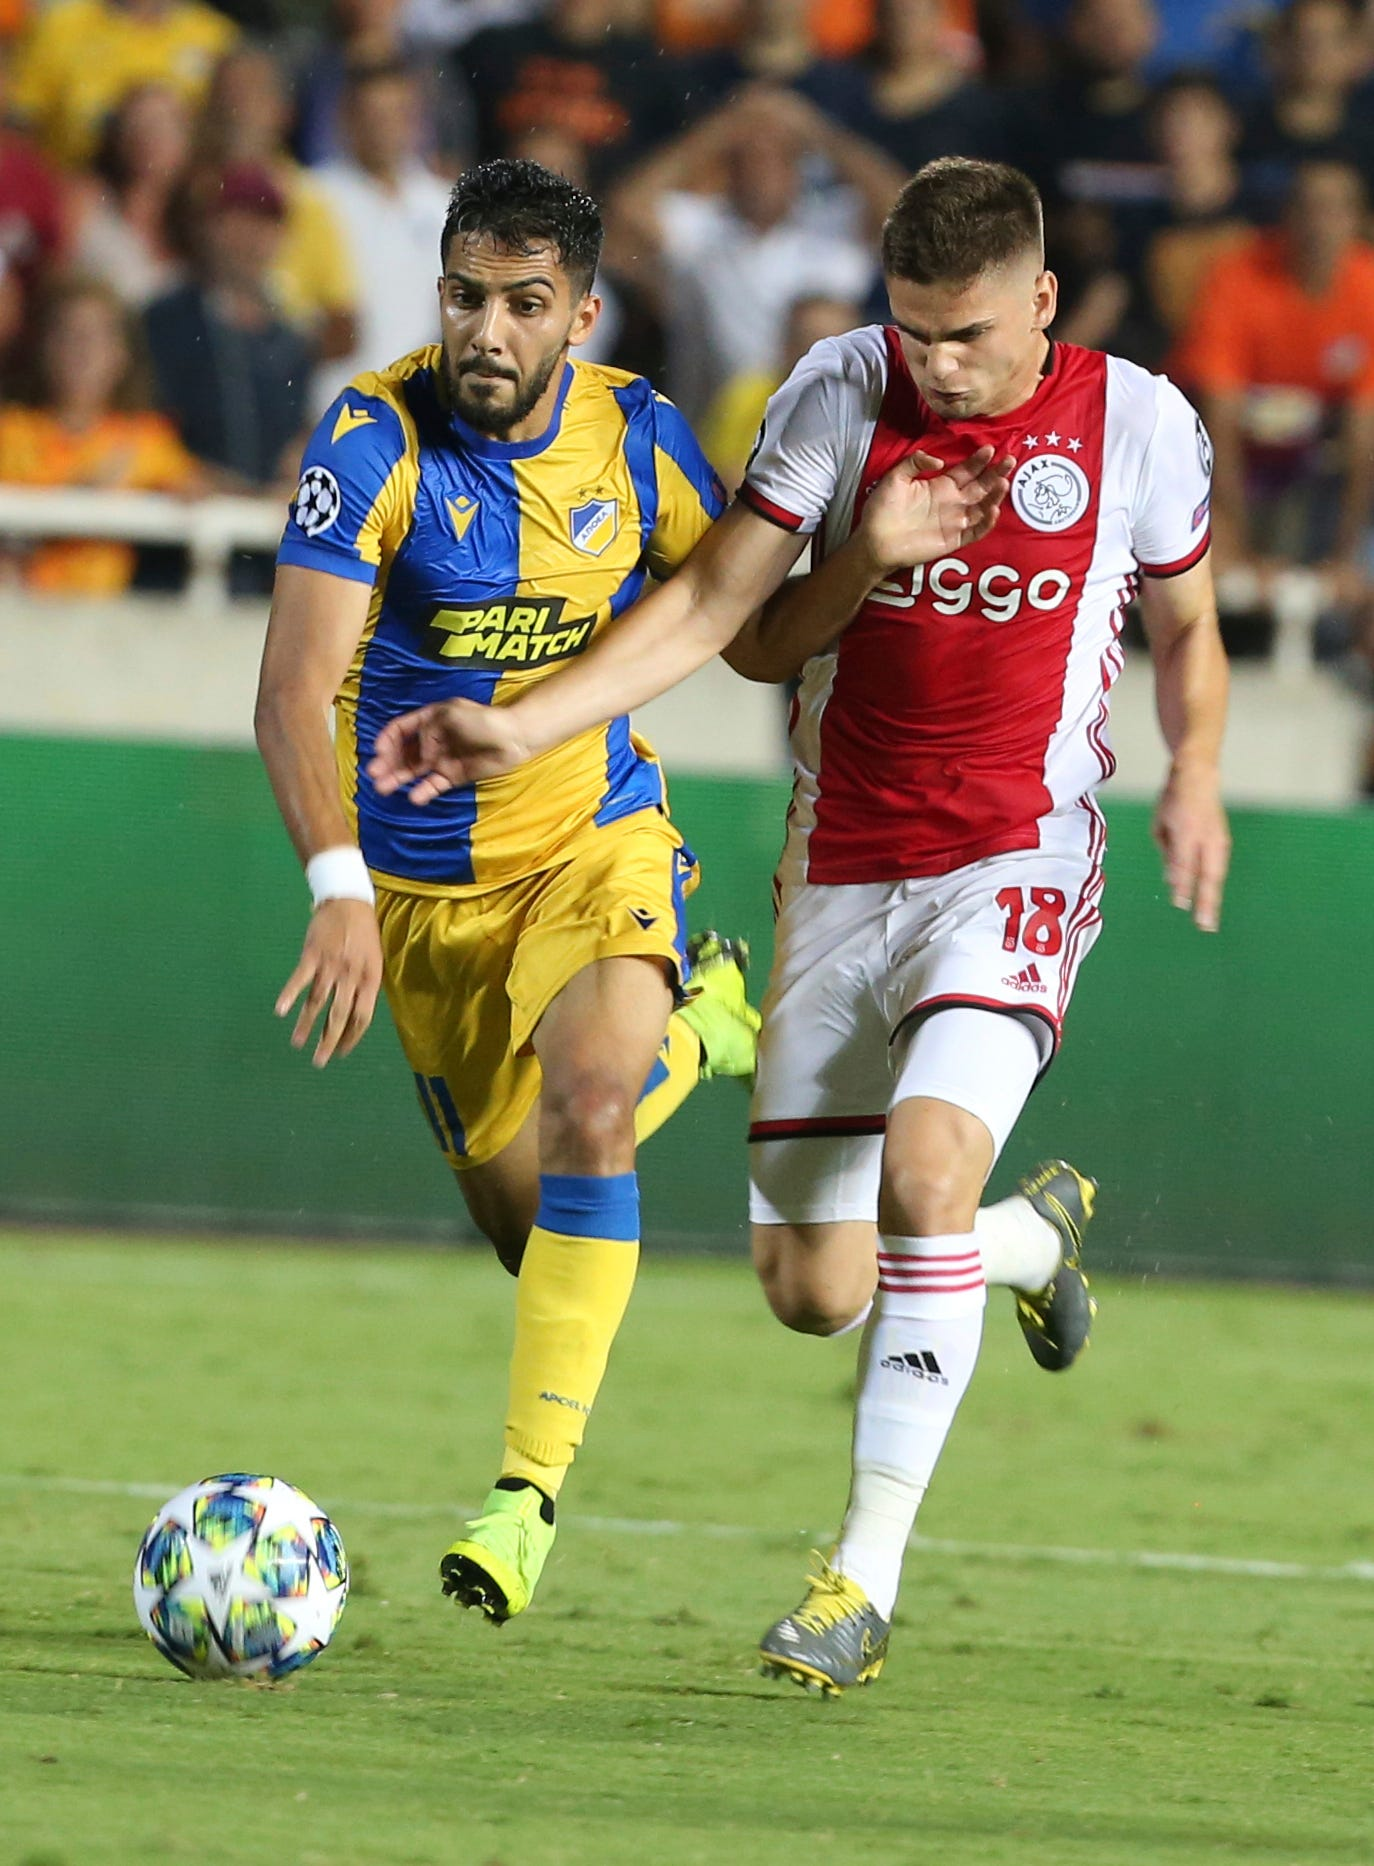 10-men Ajax struggles to draw in Champions League qualifying